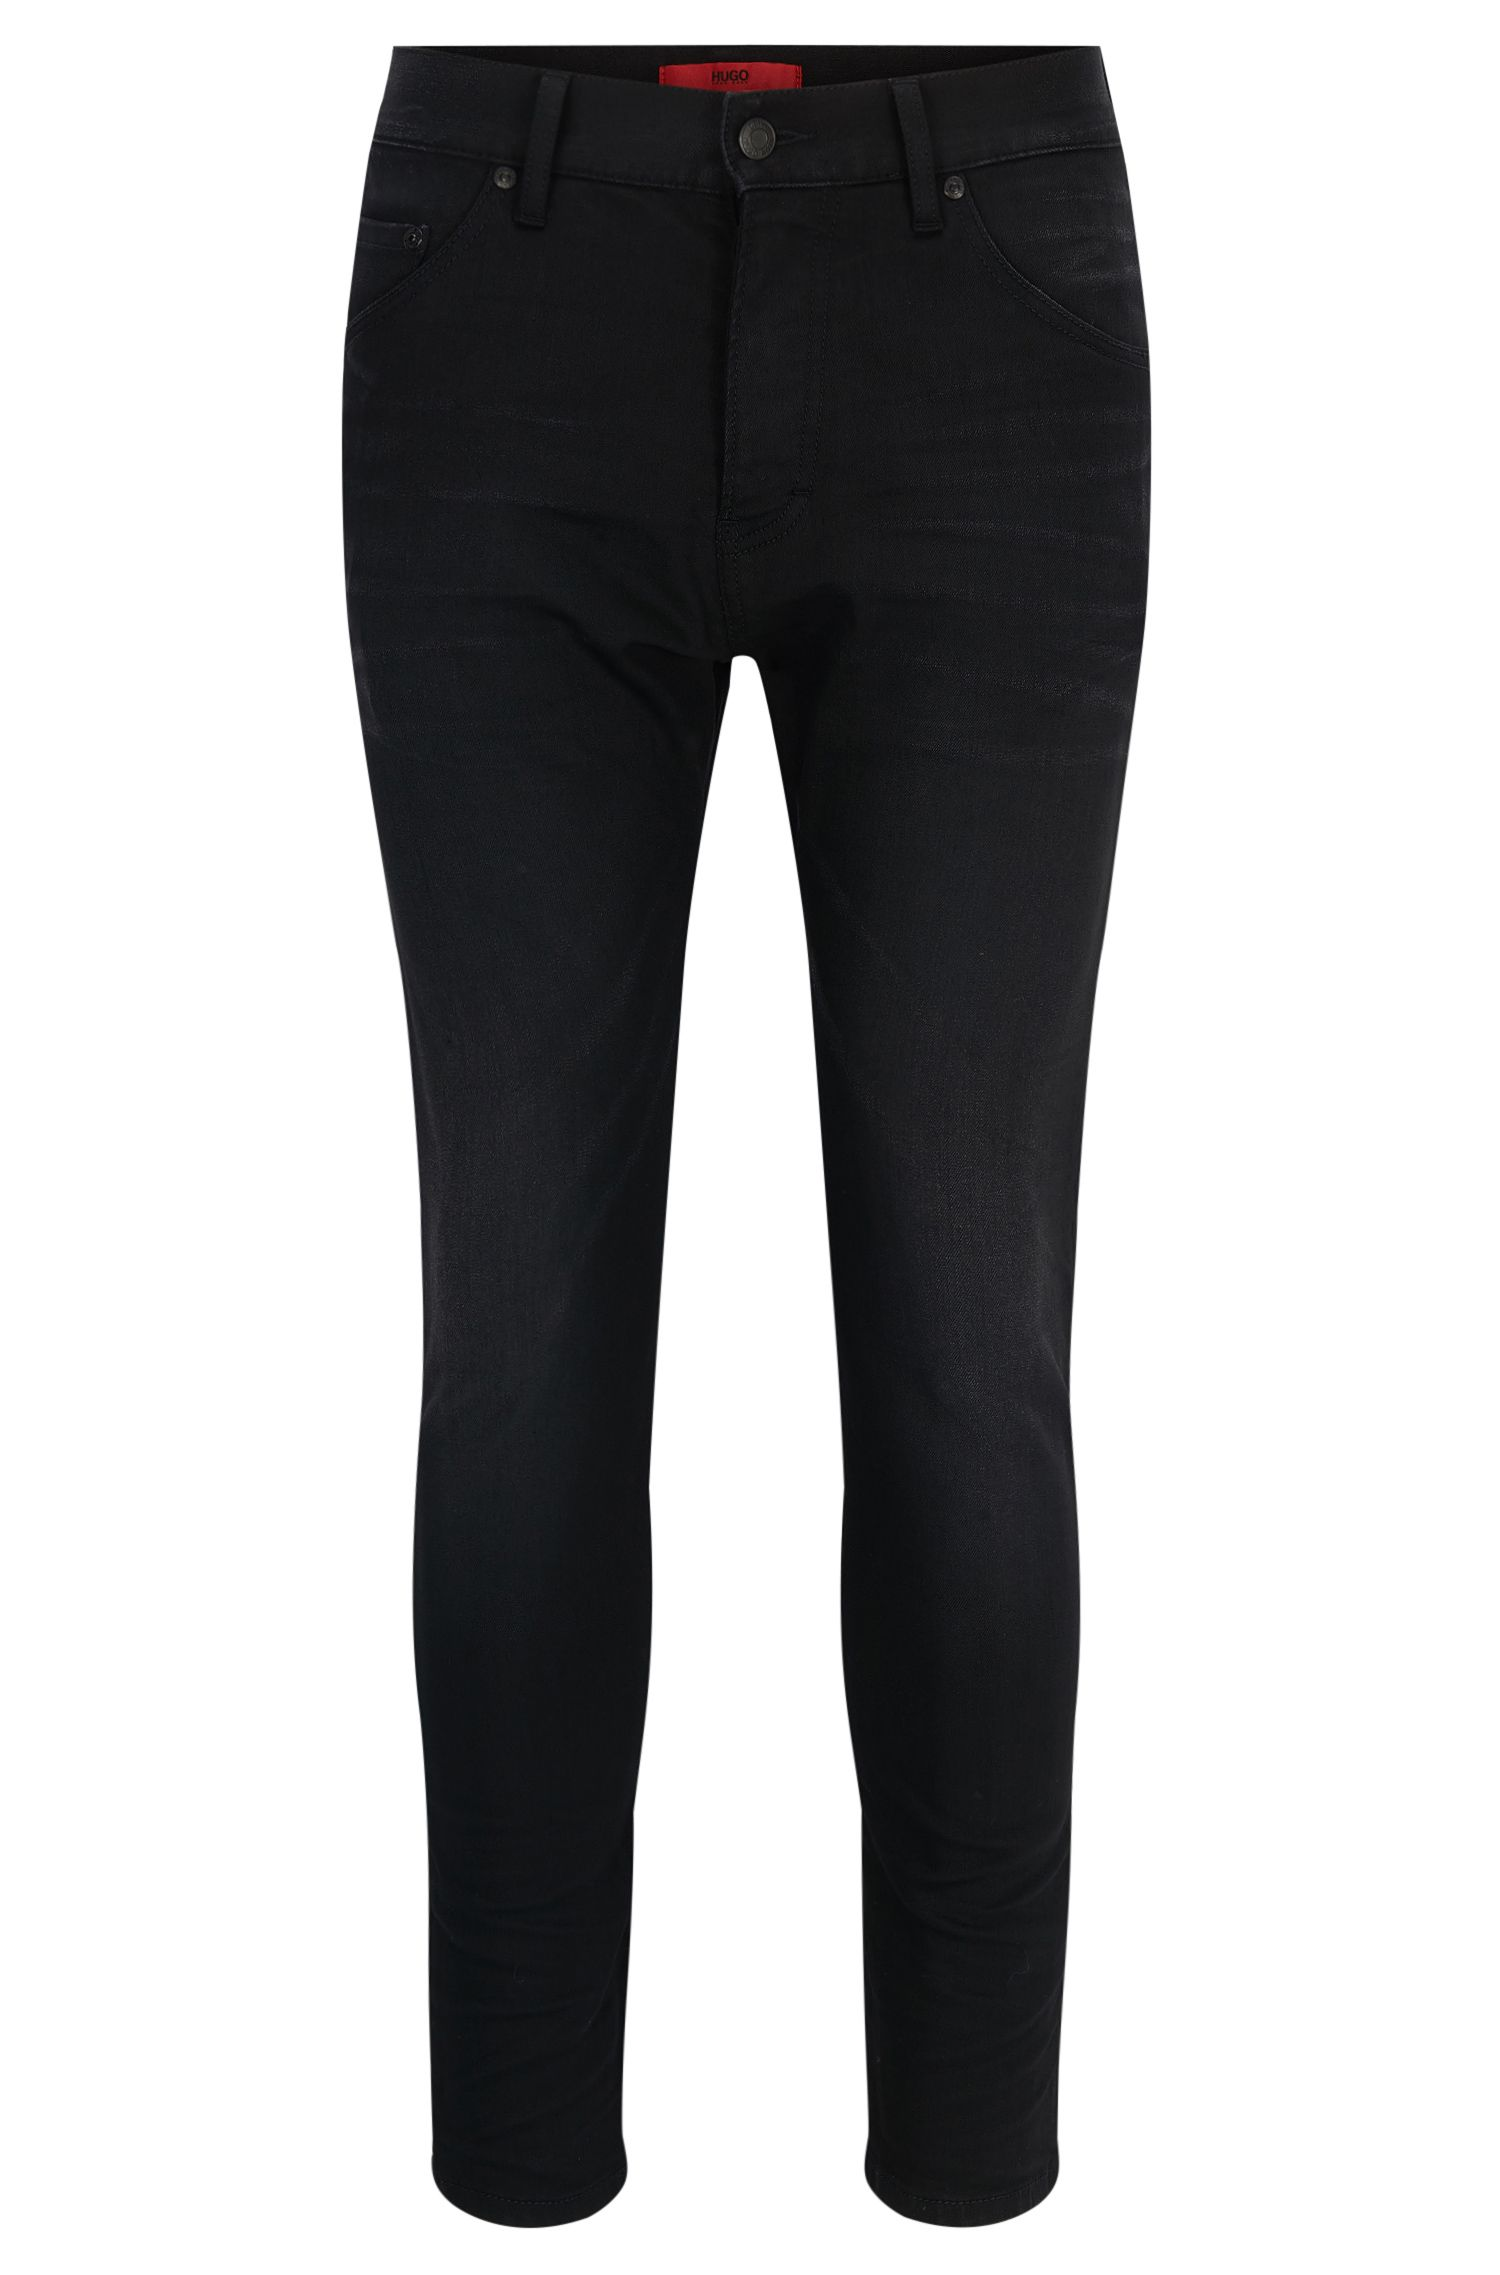 10 oz Stretch Cotton Jeans, Tapered Fit | Hugo 432